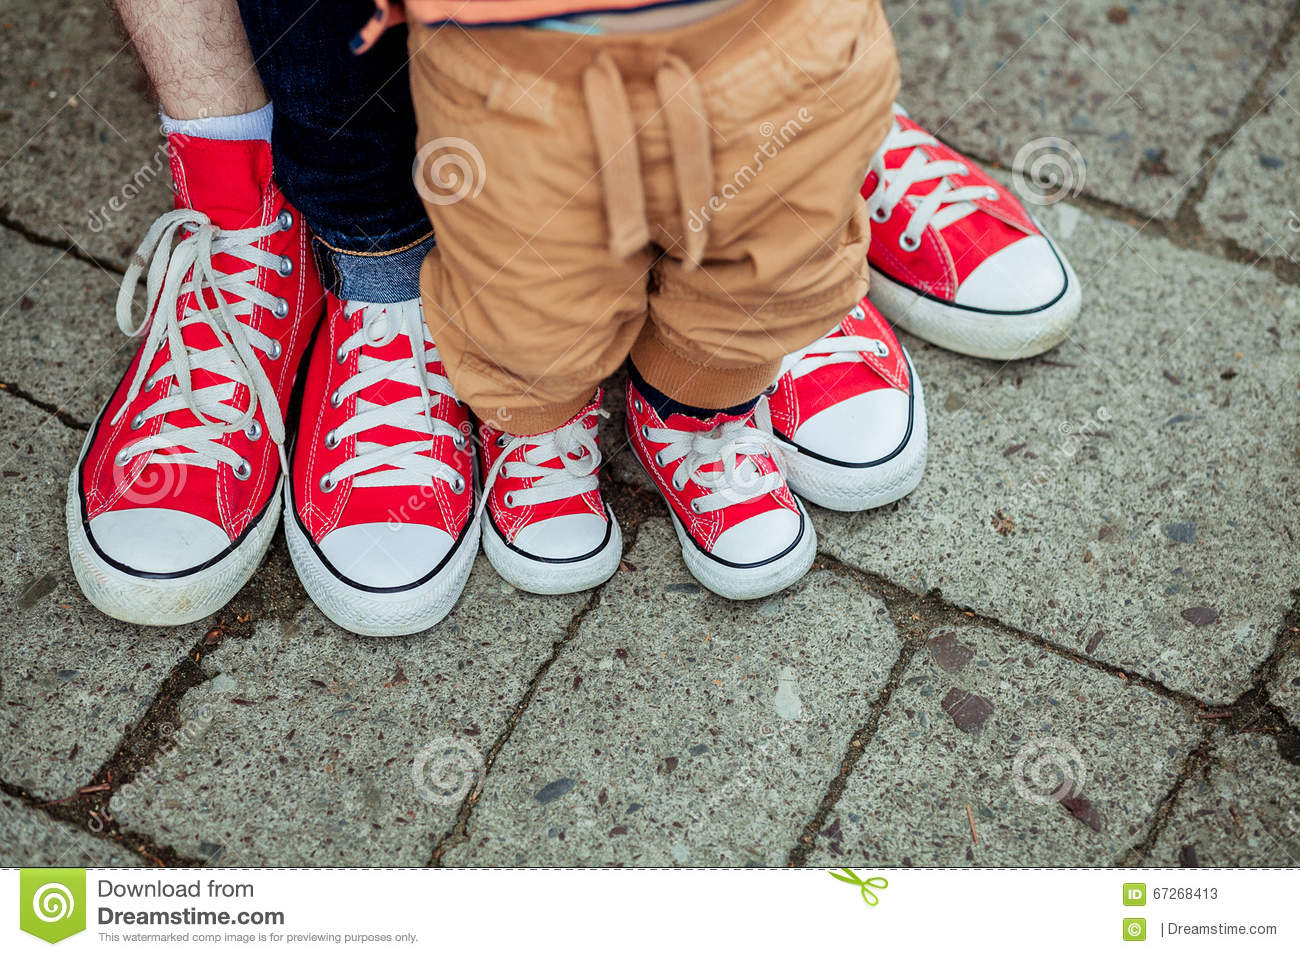 Children's Legs And Feet In Sneakers Stock Photo